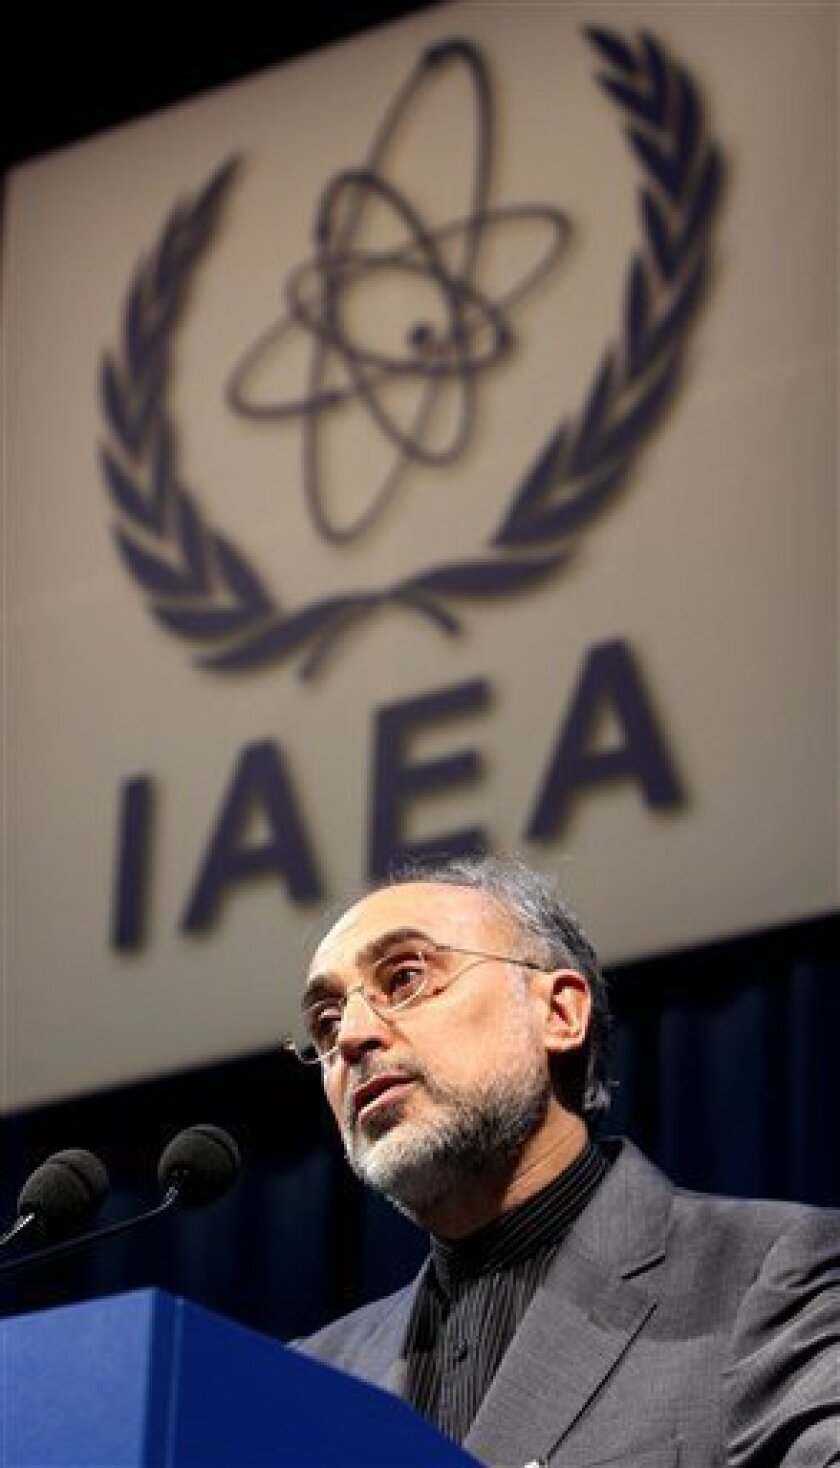 FILE- Head of Iran's Atomic Energy Organization Ali Akbar Salehi delivers a speech at the International Atomic Energy Agency, IAEA, in Vienna, Austria, in this file photo dated Monday, Sept. 20, 2010. Quoted Saturday Oct. 9, 2010, by the semiofficial Fars news agency, Iran's Ali Akbar Salehi seemed to confirm that Iran has been fighting espionage at its nuclear facilities, saying that personnel at the country's nuclear facilities were lured by promises of better pay to pass secrets to the West, but that increased security and worker privileges has put a stop to the spying. (AP Photo/Ronald Zak, file)